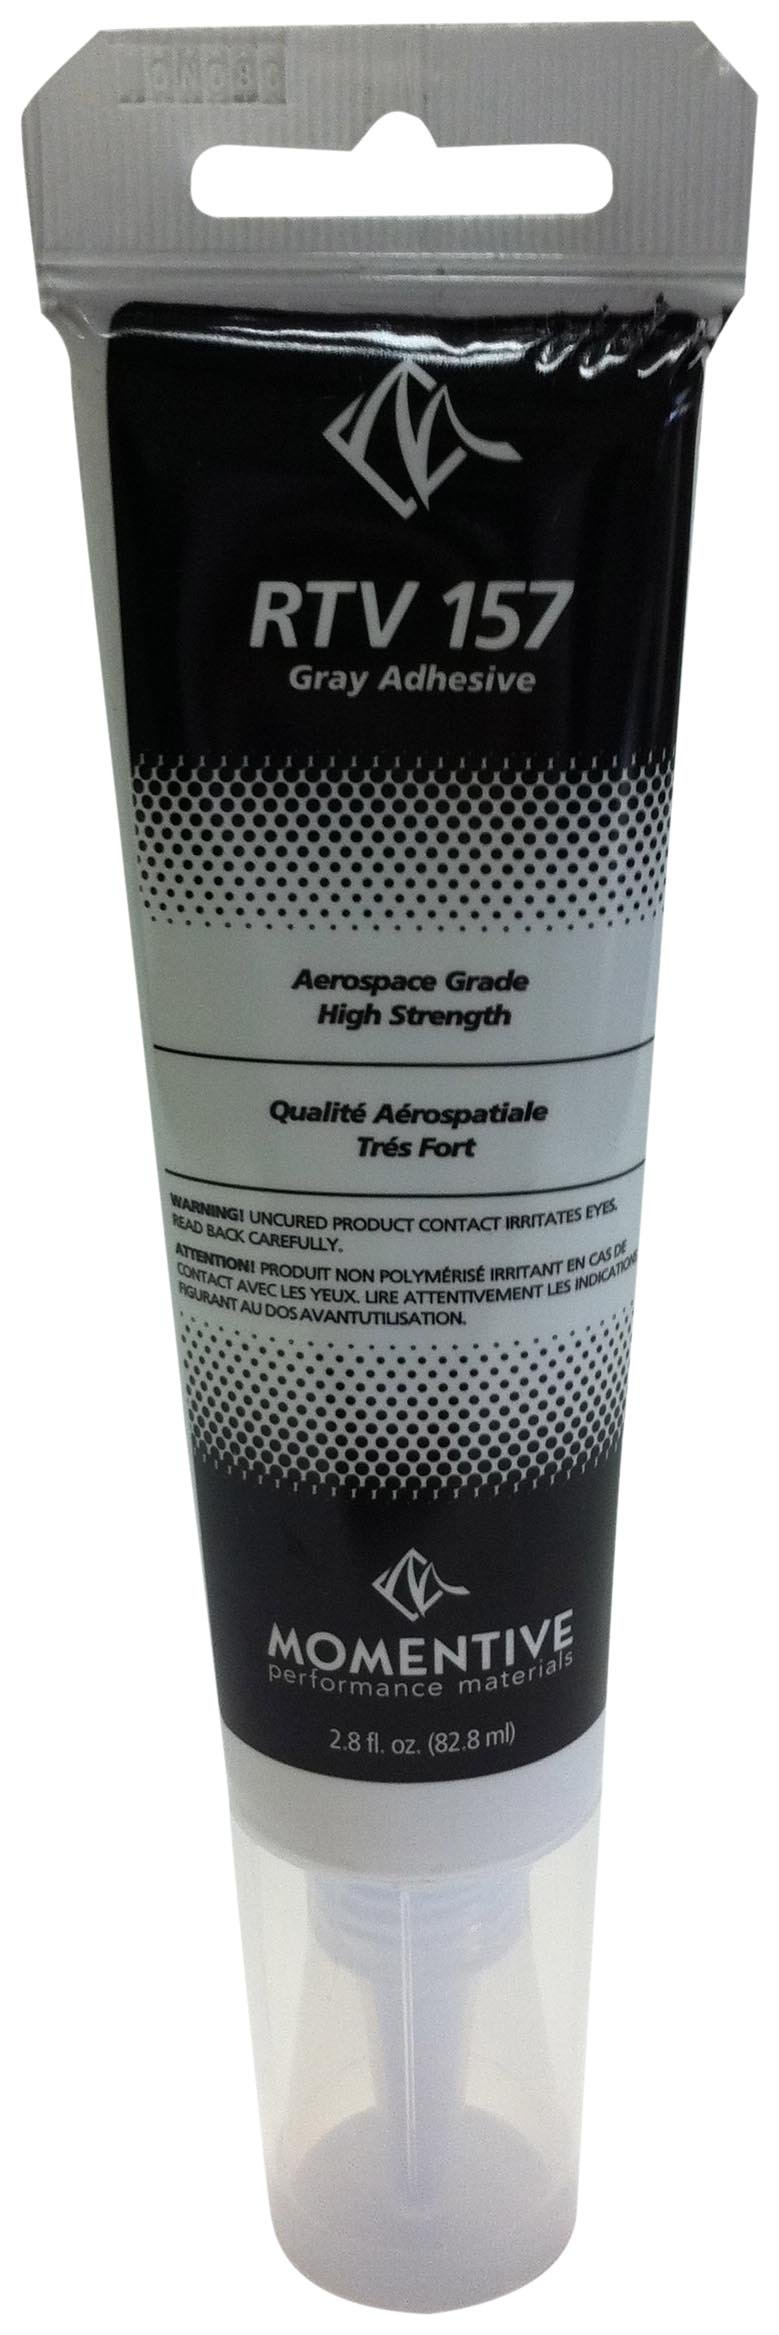 Momentive RTV 157 One Part Silicone Sealant, 2.8 Ounce Tube, Gray by Momentive